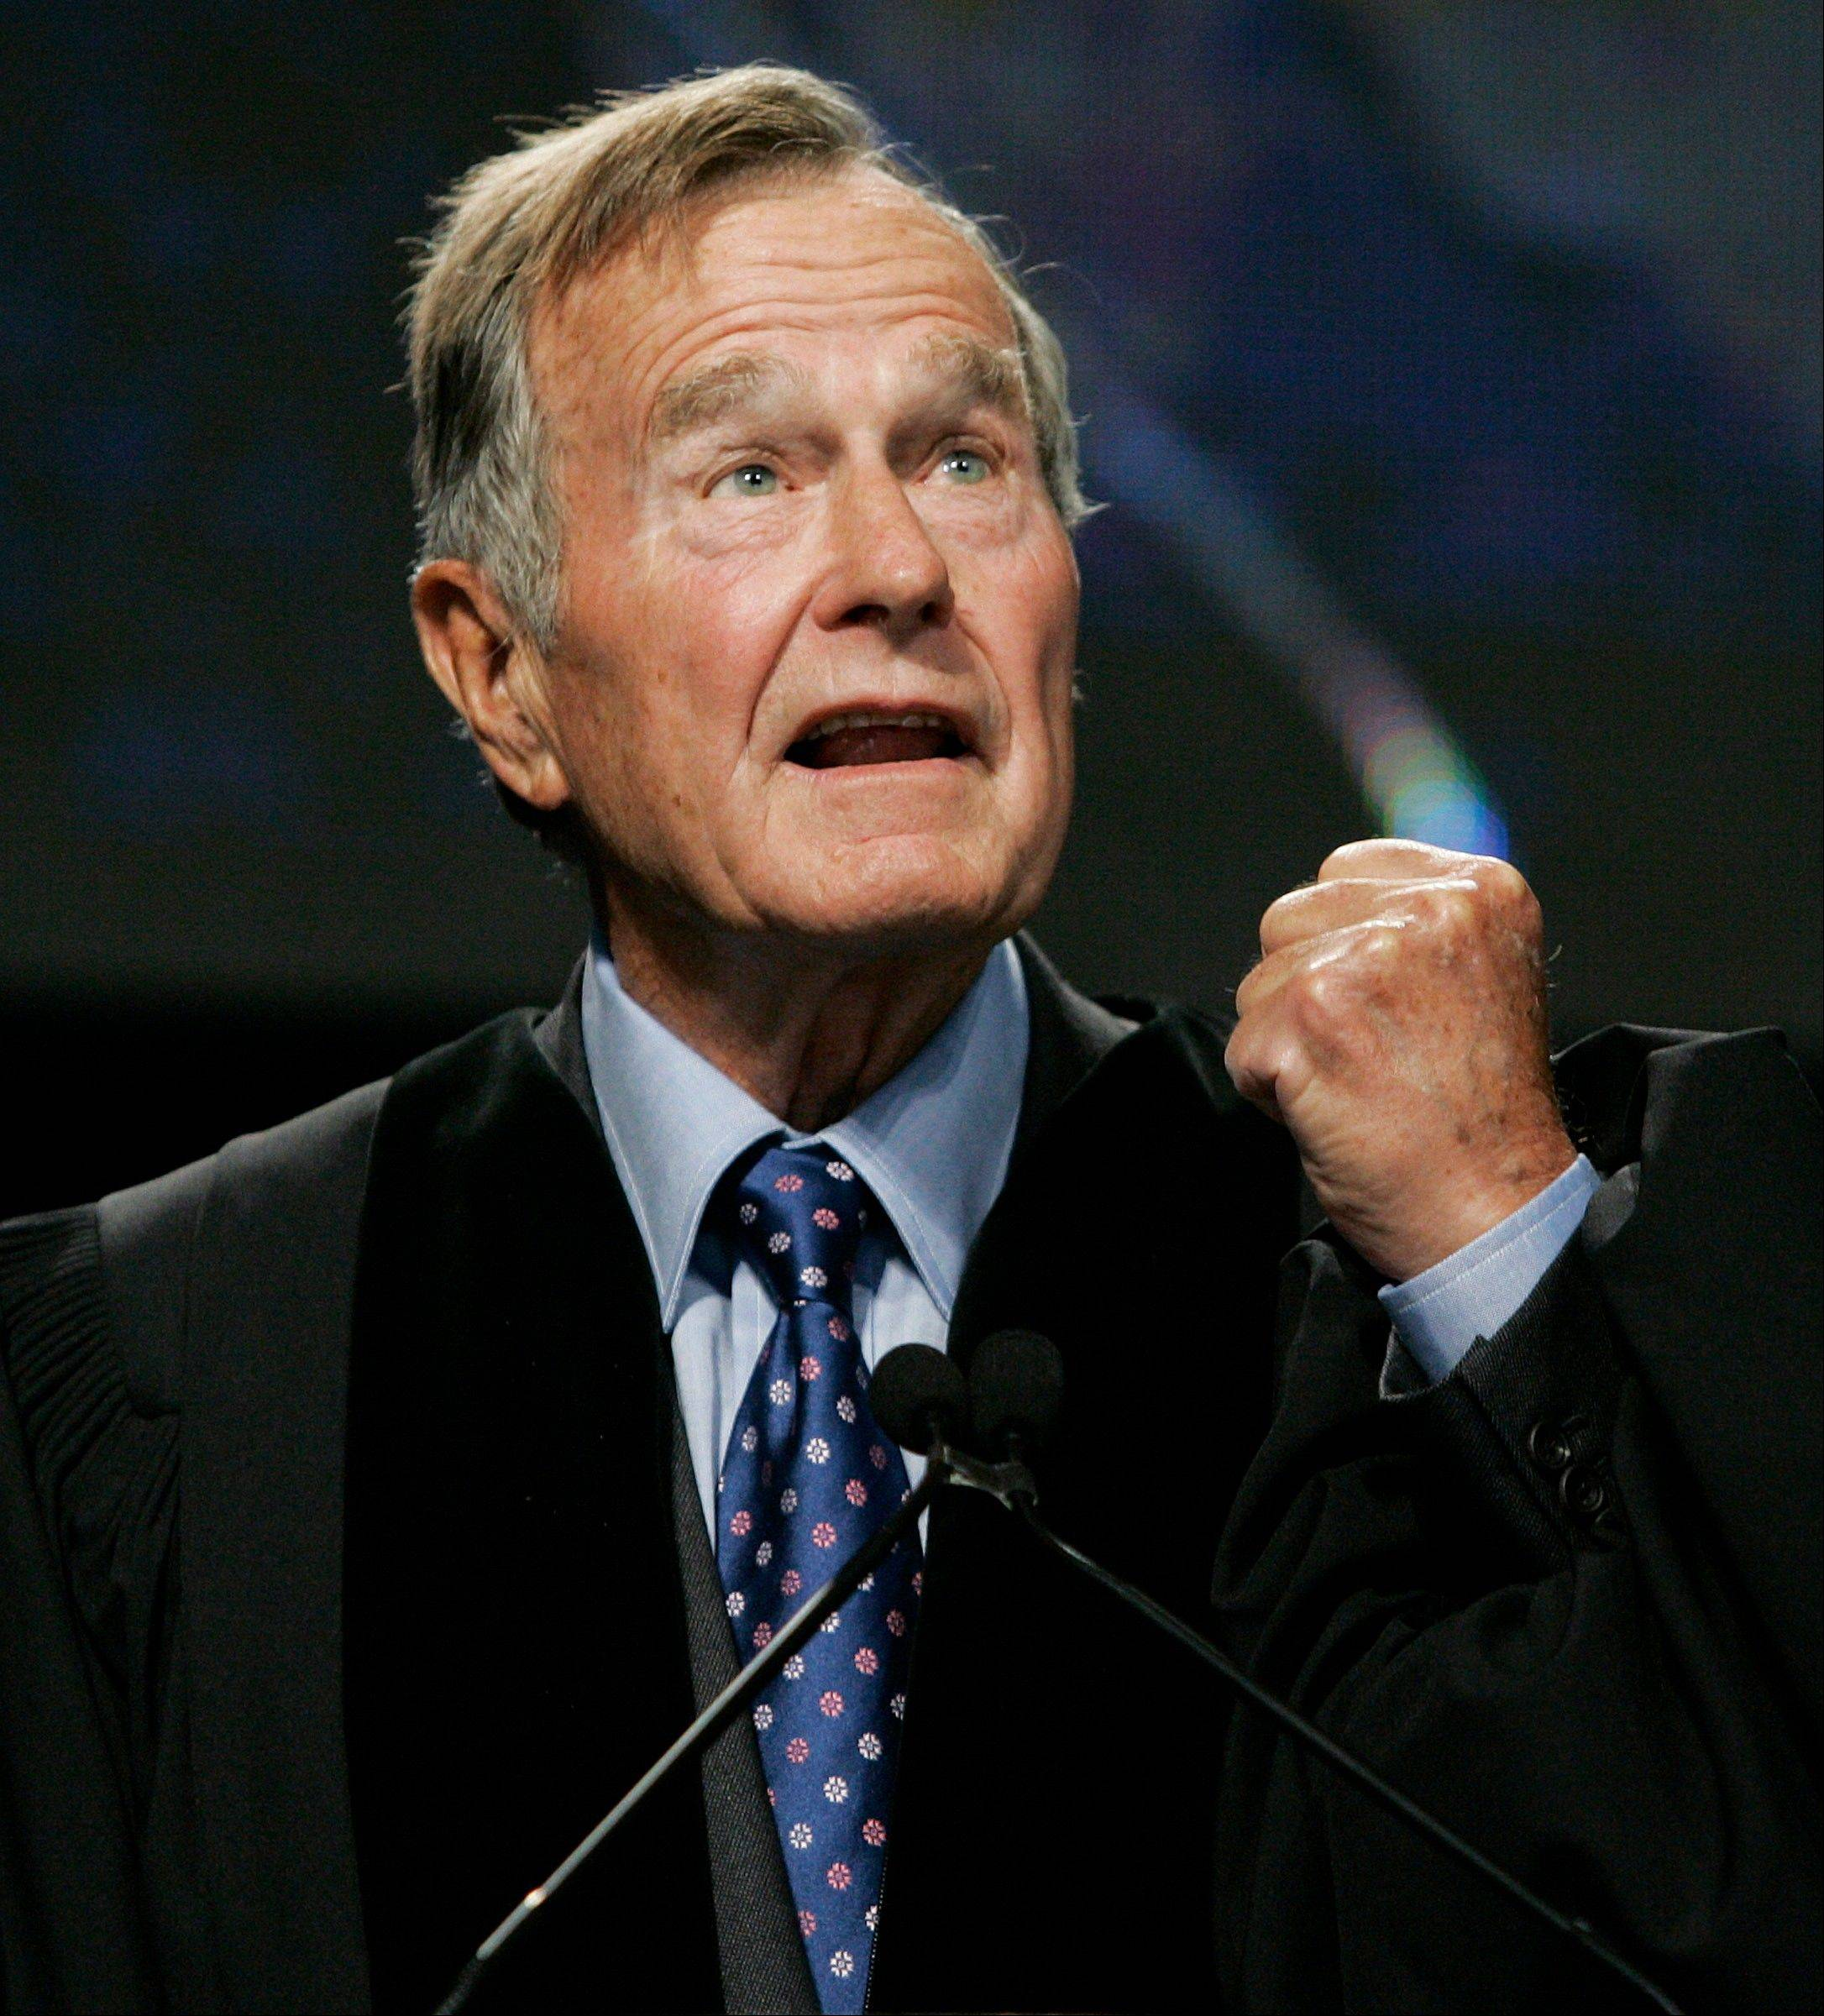 Ex-President George H.W. Bush delivers the keynote speech before receiving an honorary Doctor of Public Administration degree at Suffolk University in Boston.